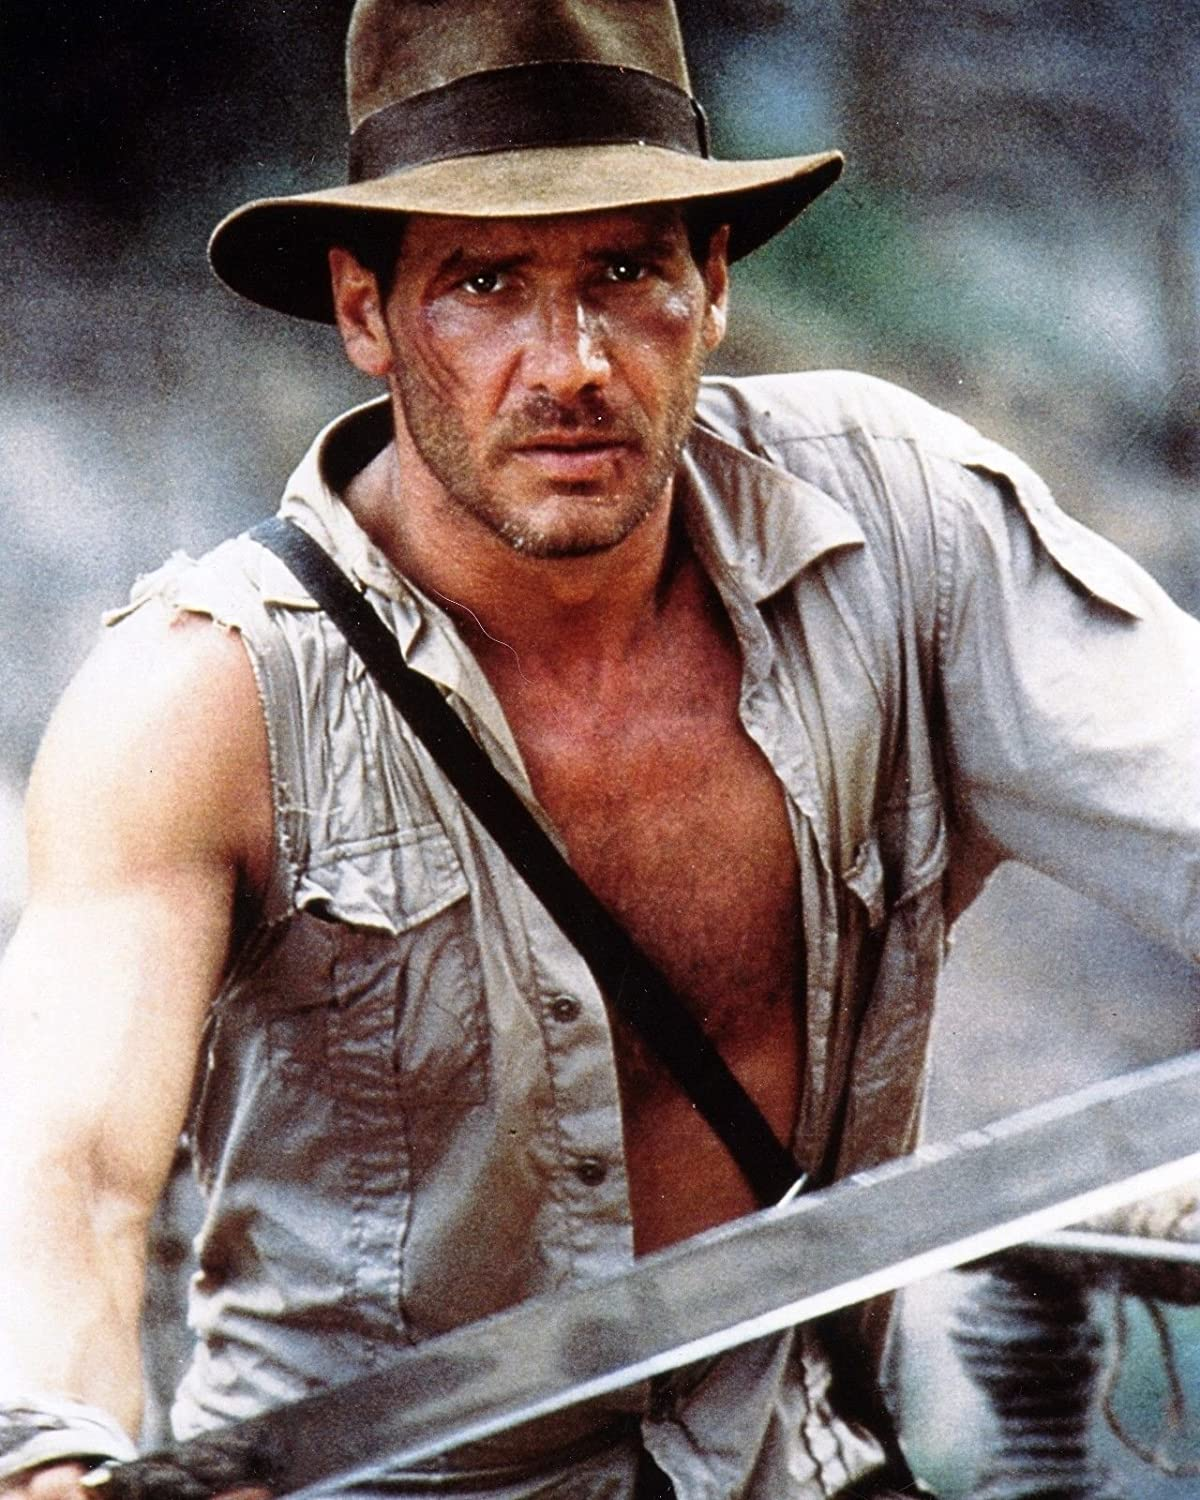 Inspire Dream Play INDIANA Raleigh Mall JONES FORD HARRISON Photo 8x10 5 ☆ popular Color